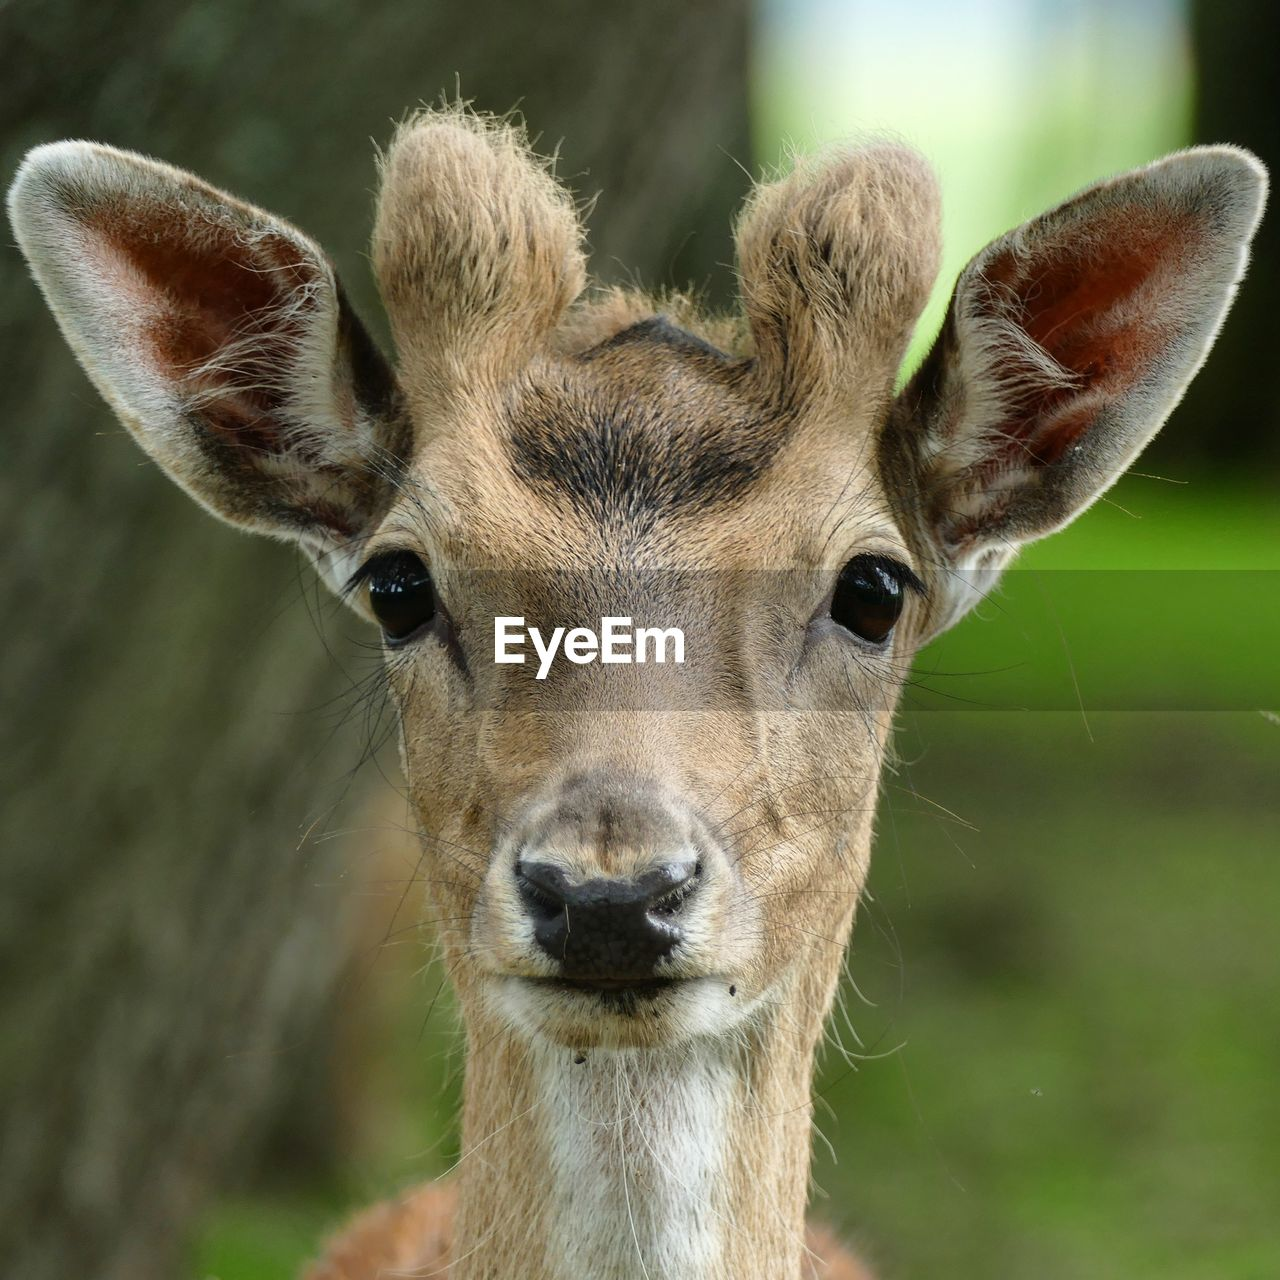 mammal, one animal, animals in the wild, animal wildlife, deer, focus on foreground, close-up, portrait, vertebrate, no people, animal body part, looking at camera, day, herbivorous, domestic animals, fawn